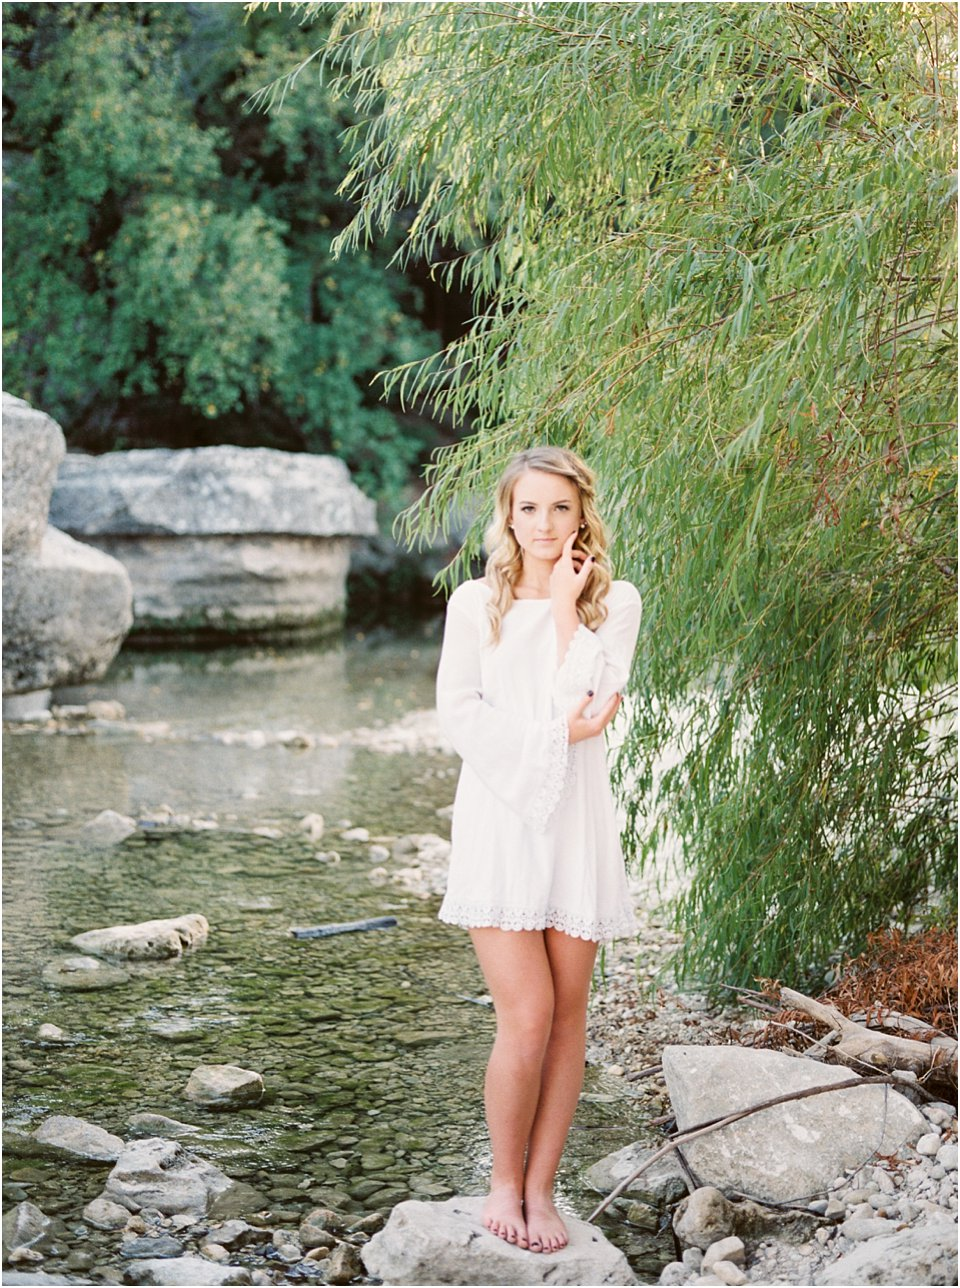 Austin Senior Photographer - Jessica Scott Photography - Annika